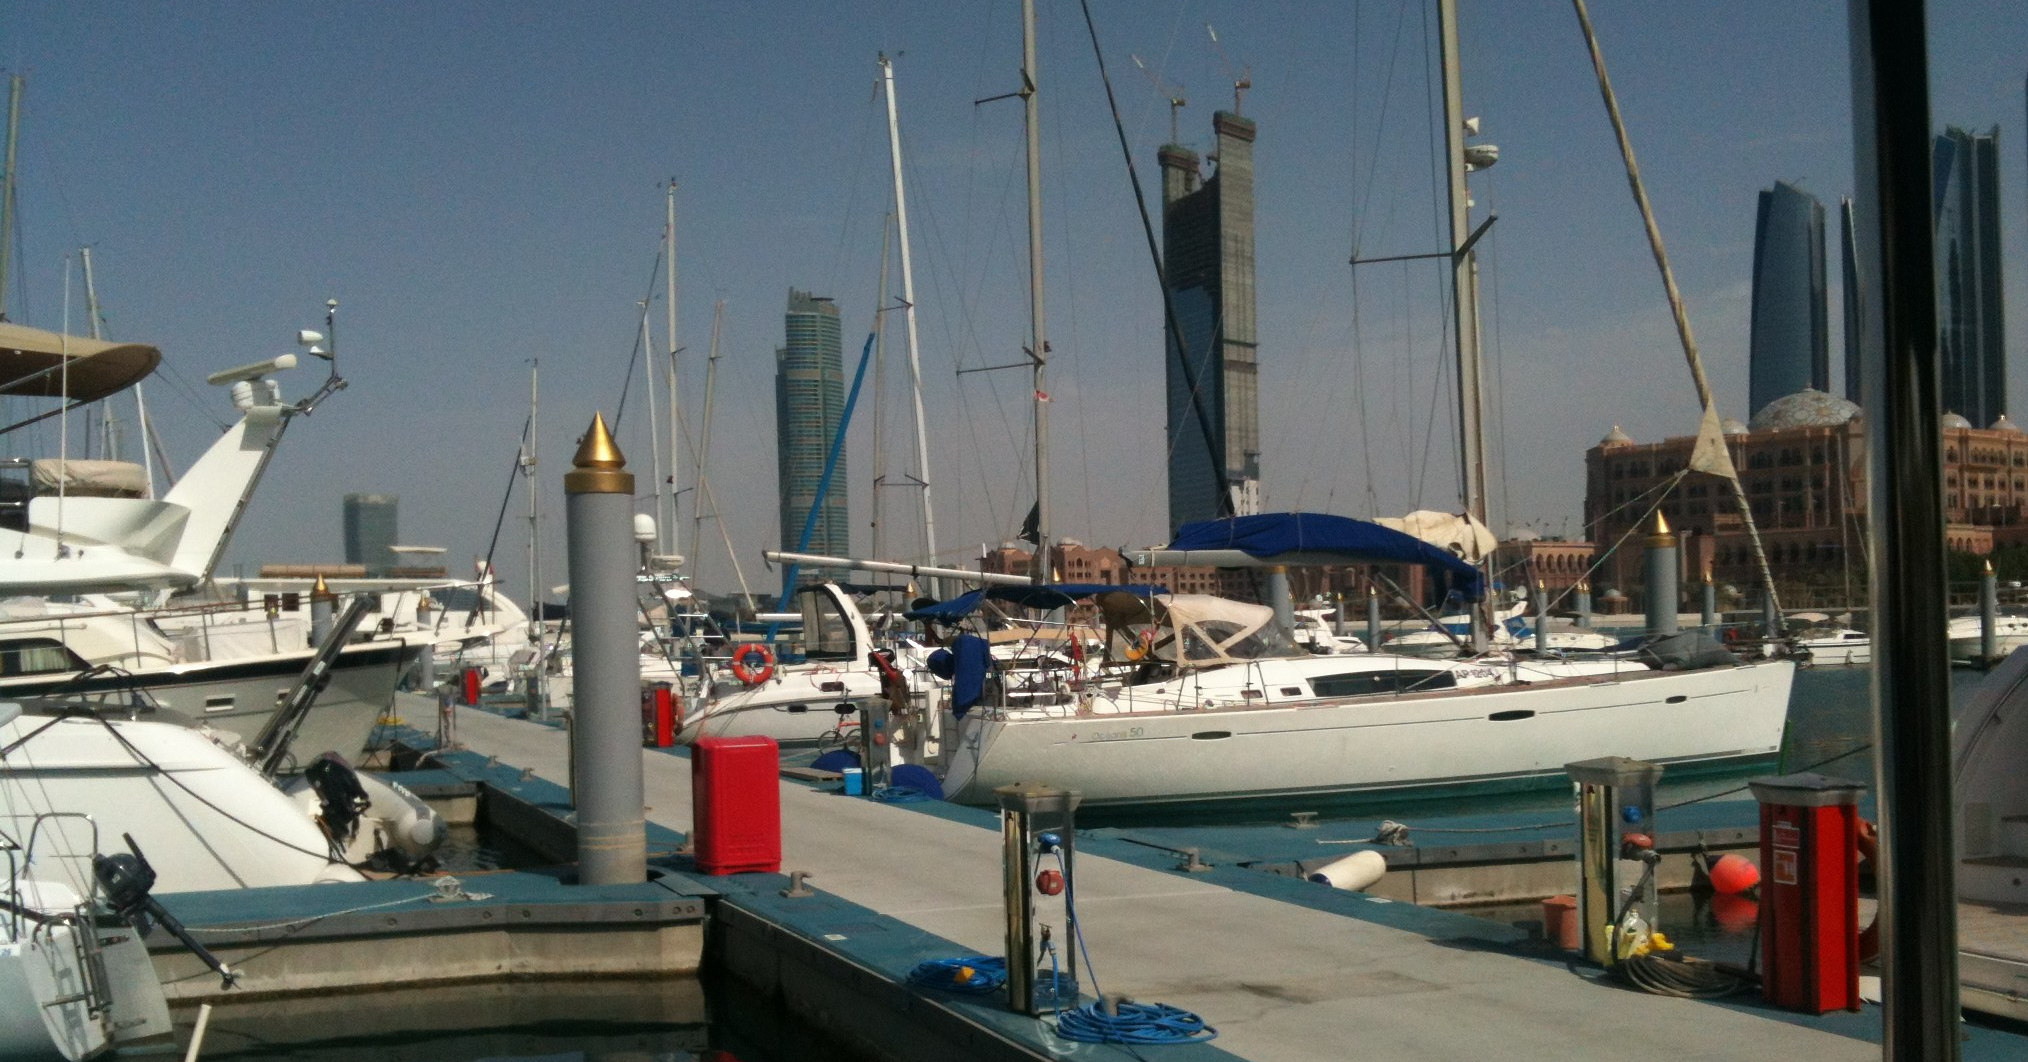 Gold-tips in Abu Dhabi's Emirates Palace Marina (GM-A, 2013)